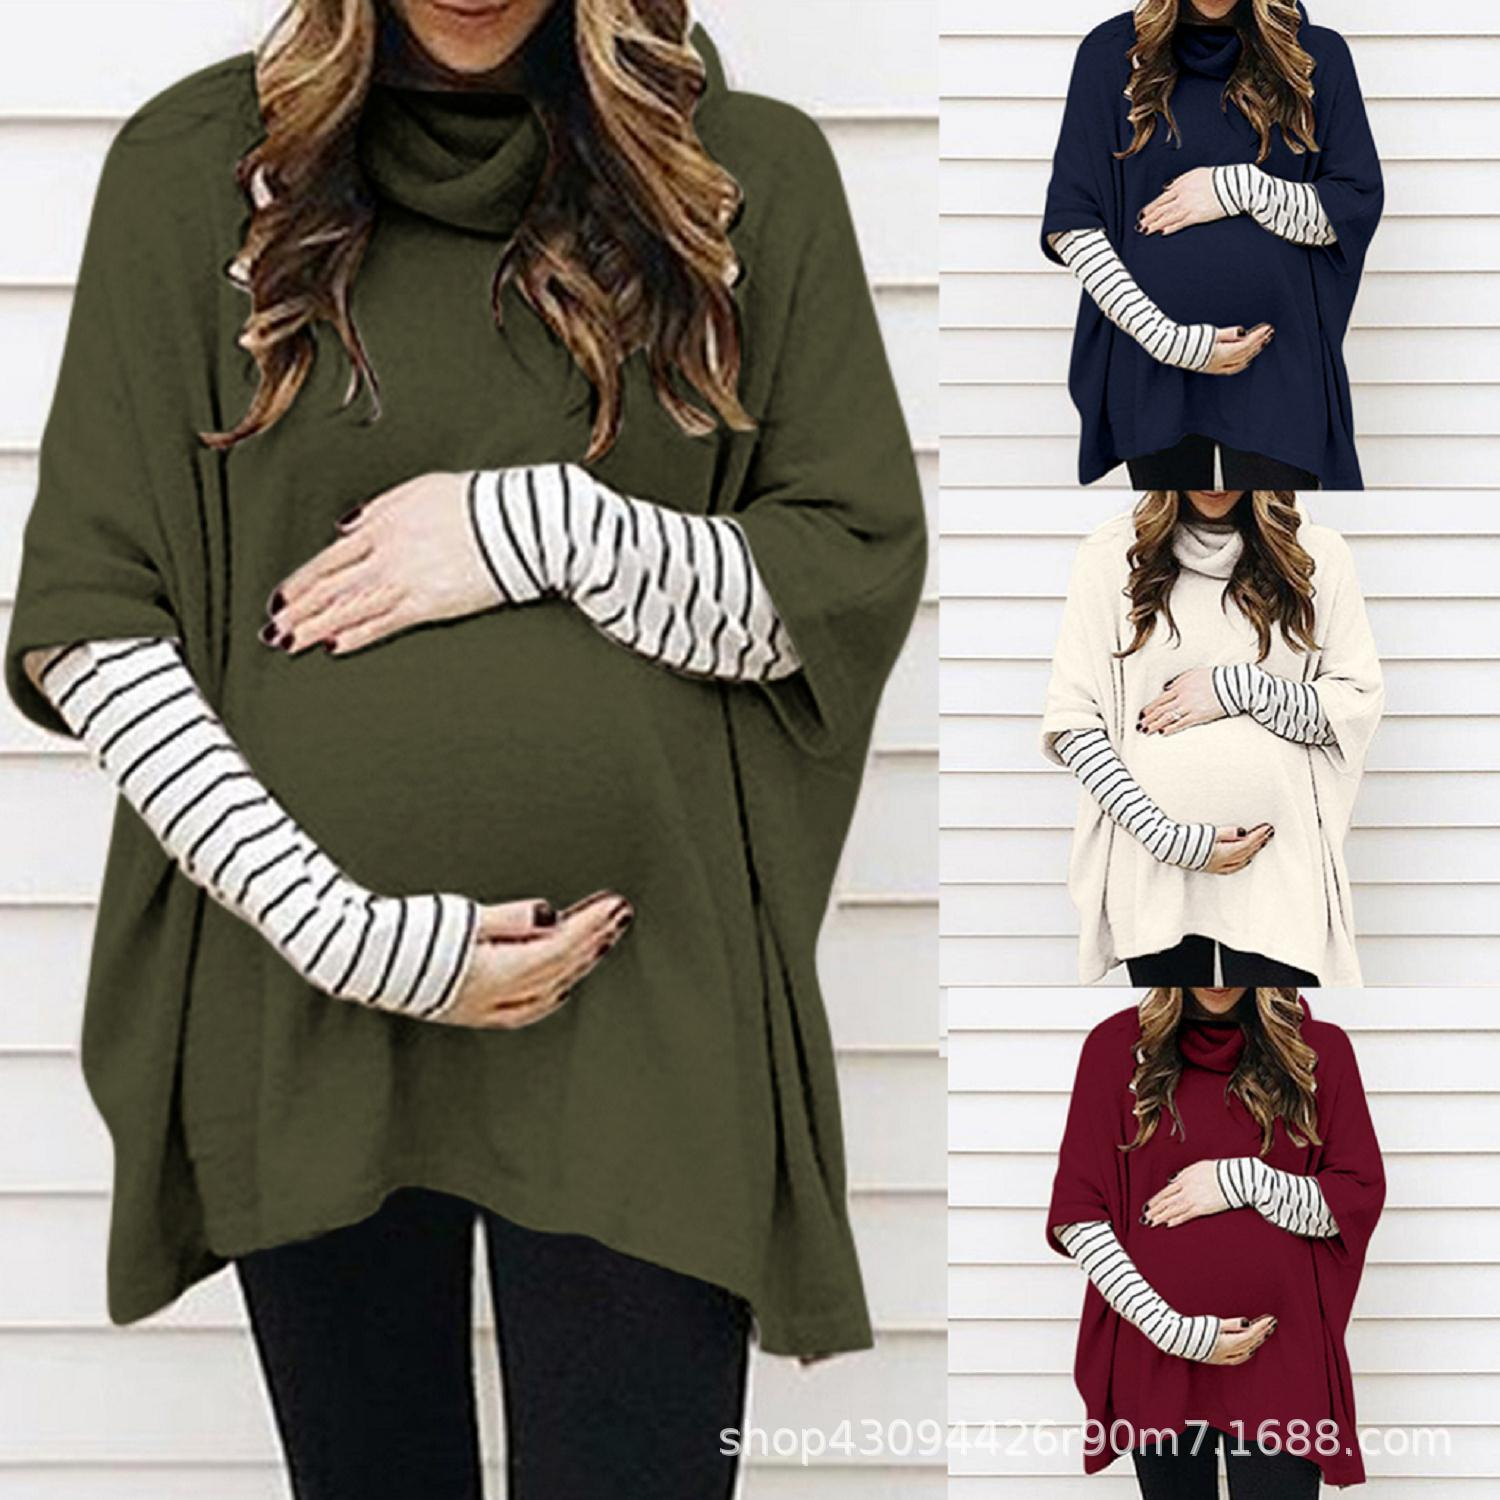 Pullover Sweatshirt Autumn Winter Pregnant Clothes Women Maternity Sweatshirt High Collar Long Sleeve Splicing Stripe Tops